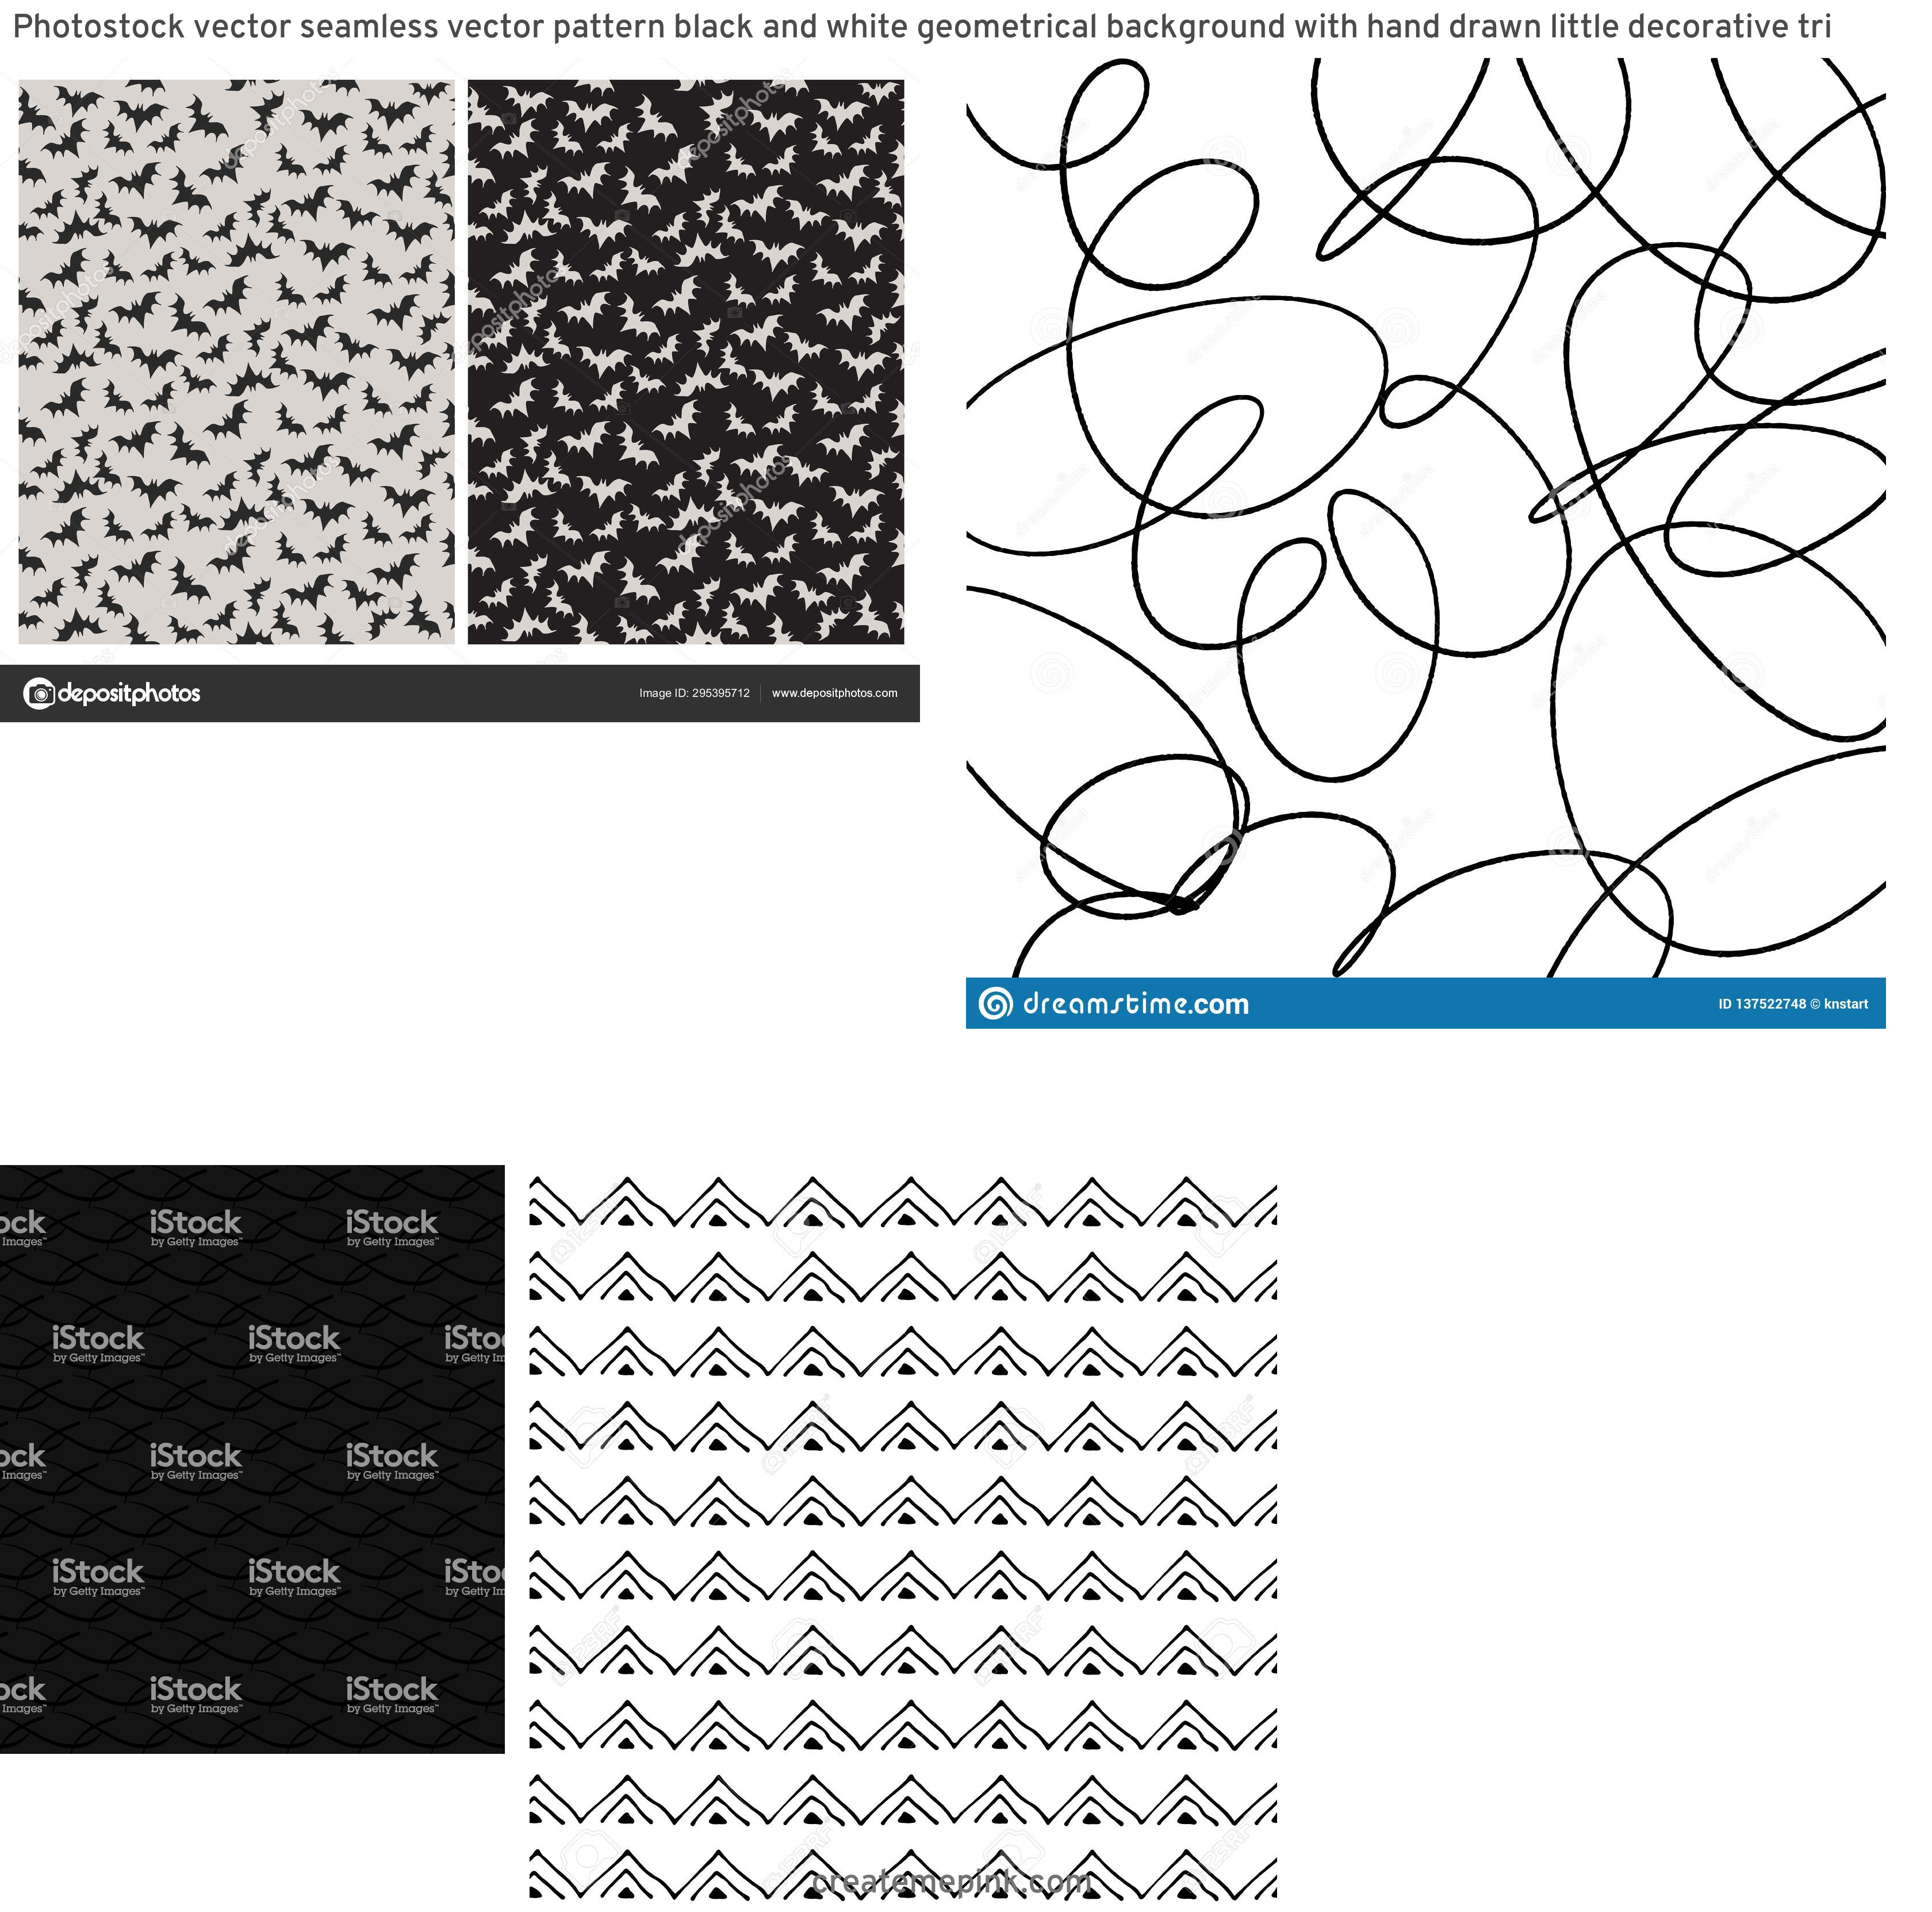 Simple Black Decorative Vector Patterns: Photostock Vector Seamless Vector Pattern Black And White Geometrical Background With Hand Drawn Little Decorative Tri